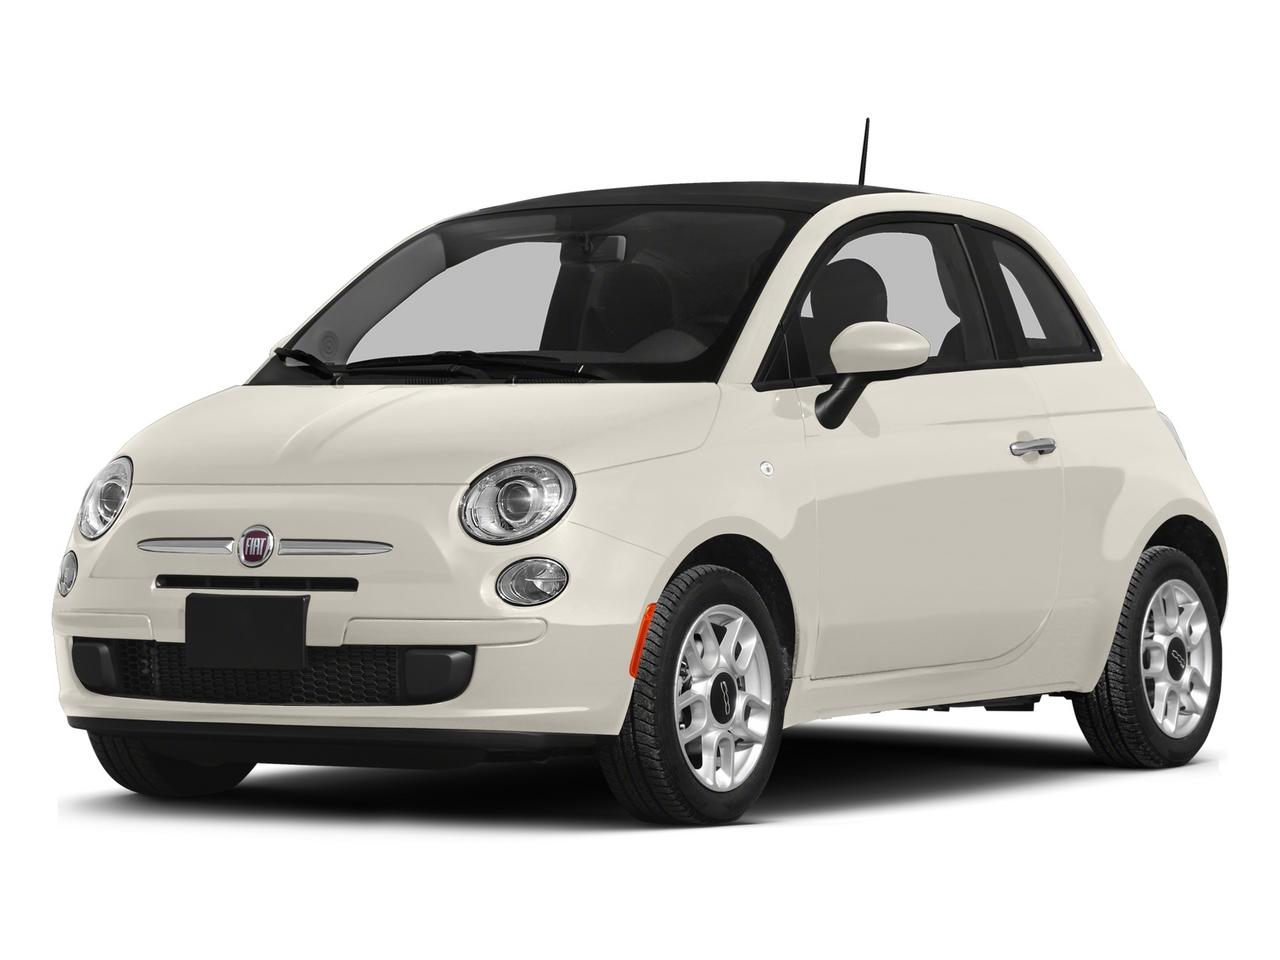 2015 FIAT 500 Vehicle Photo in Cary, NC 27511